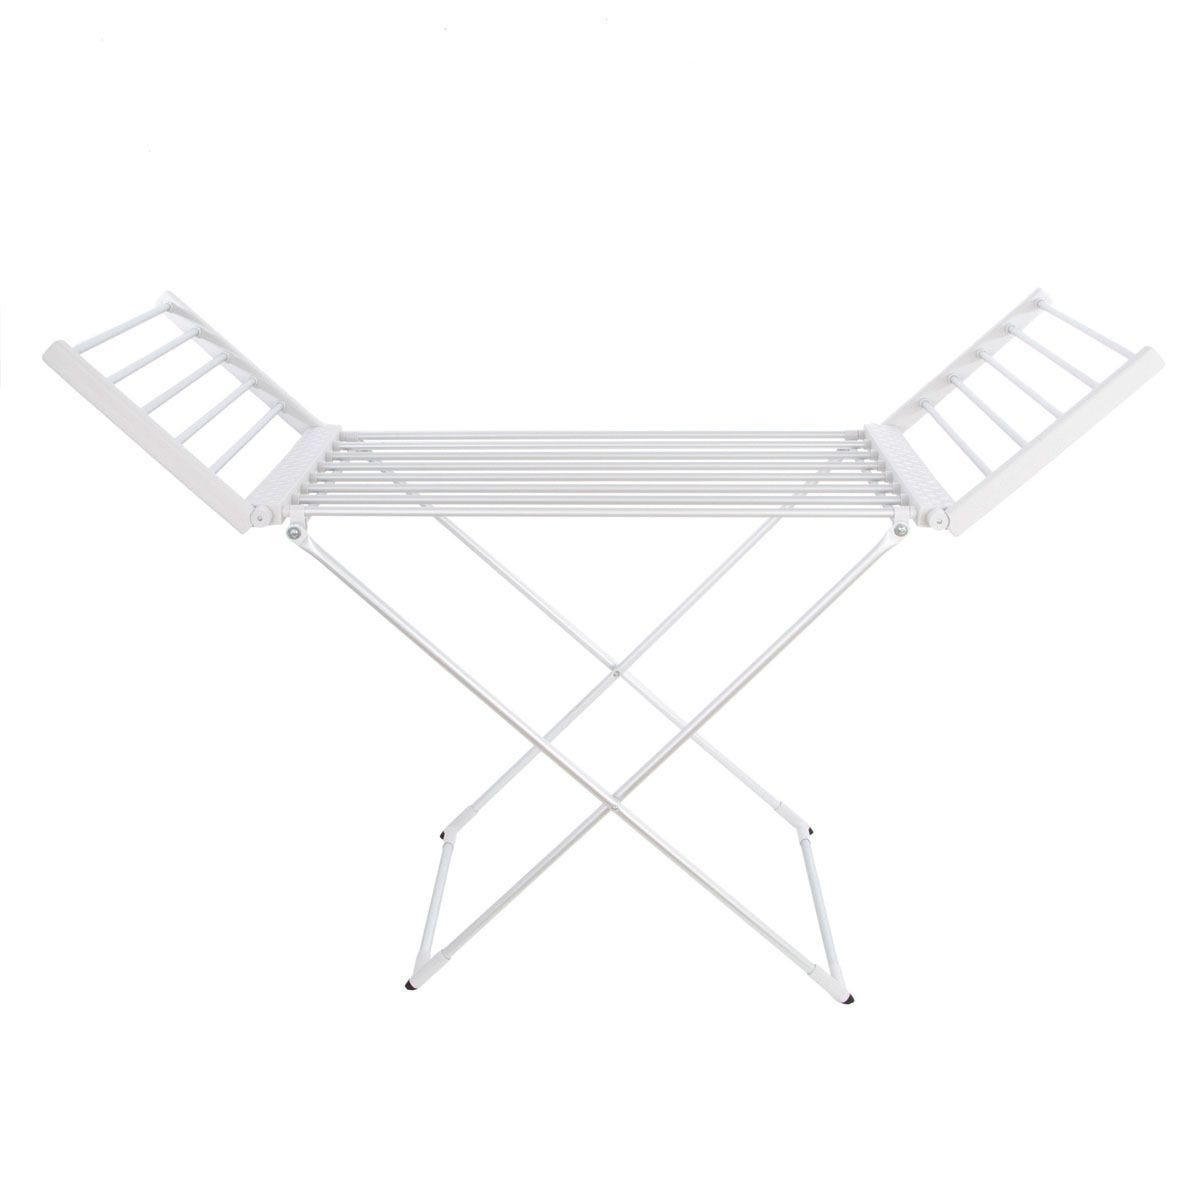 Status 220W Portable Heated Clothes Airer with Wings - Silver